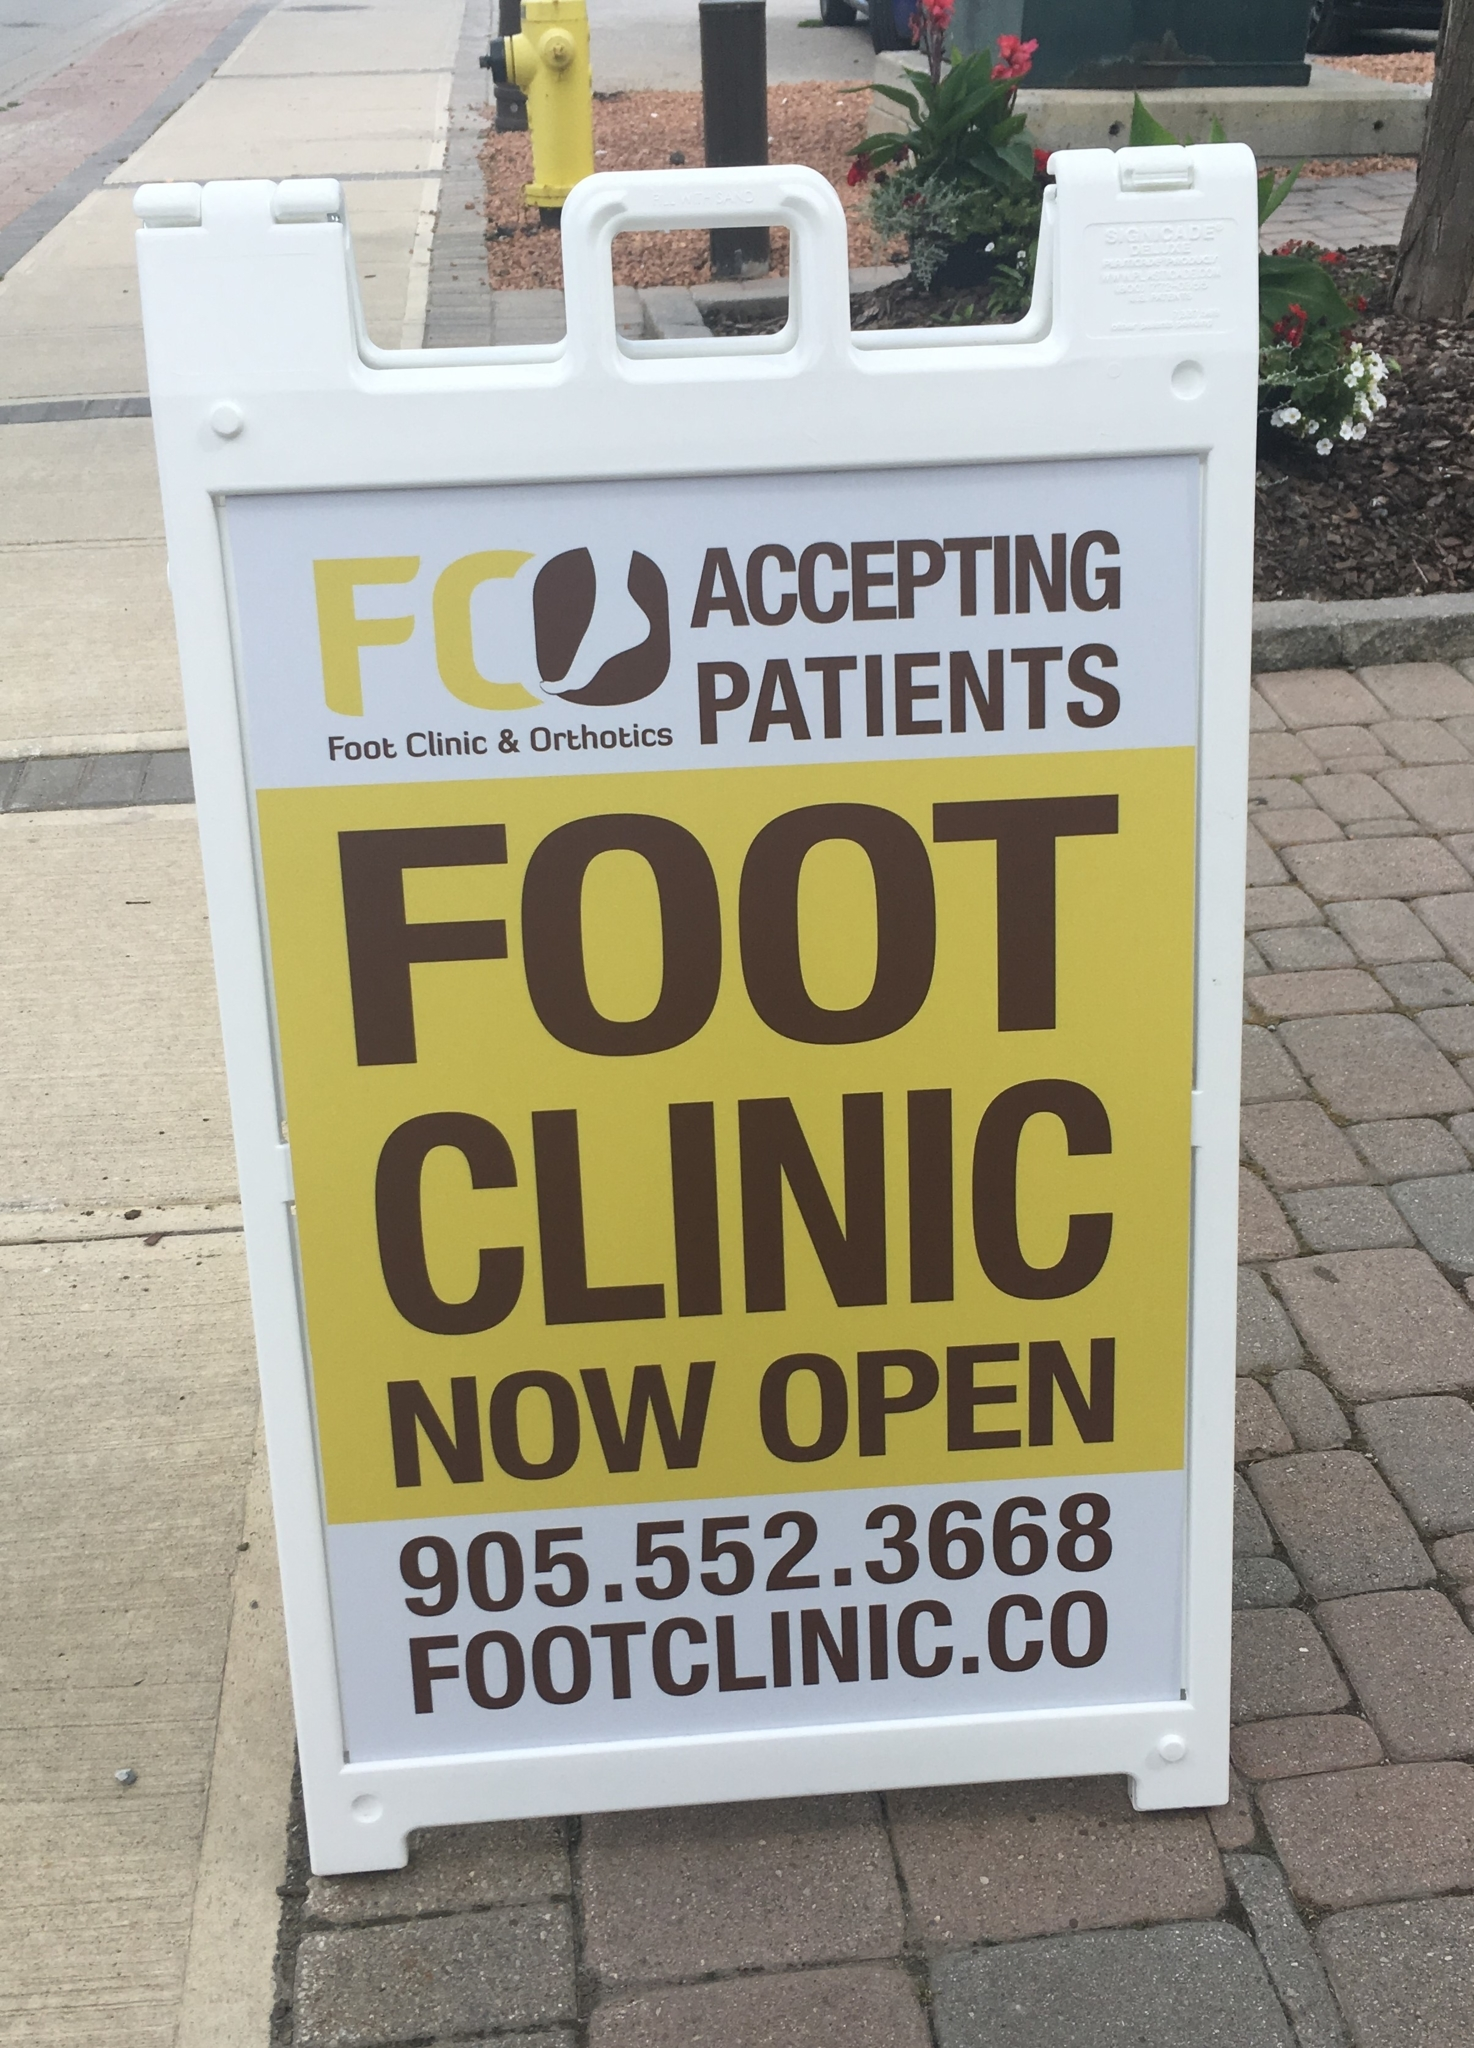 Kleinburg Foot Clinic & Orthotics